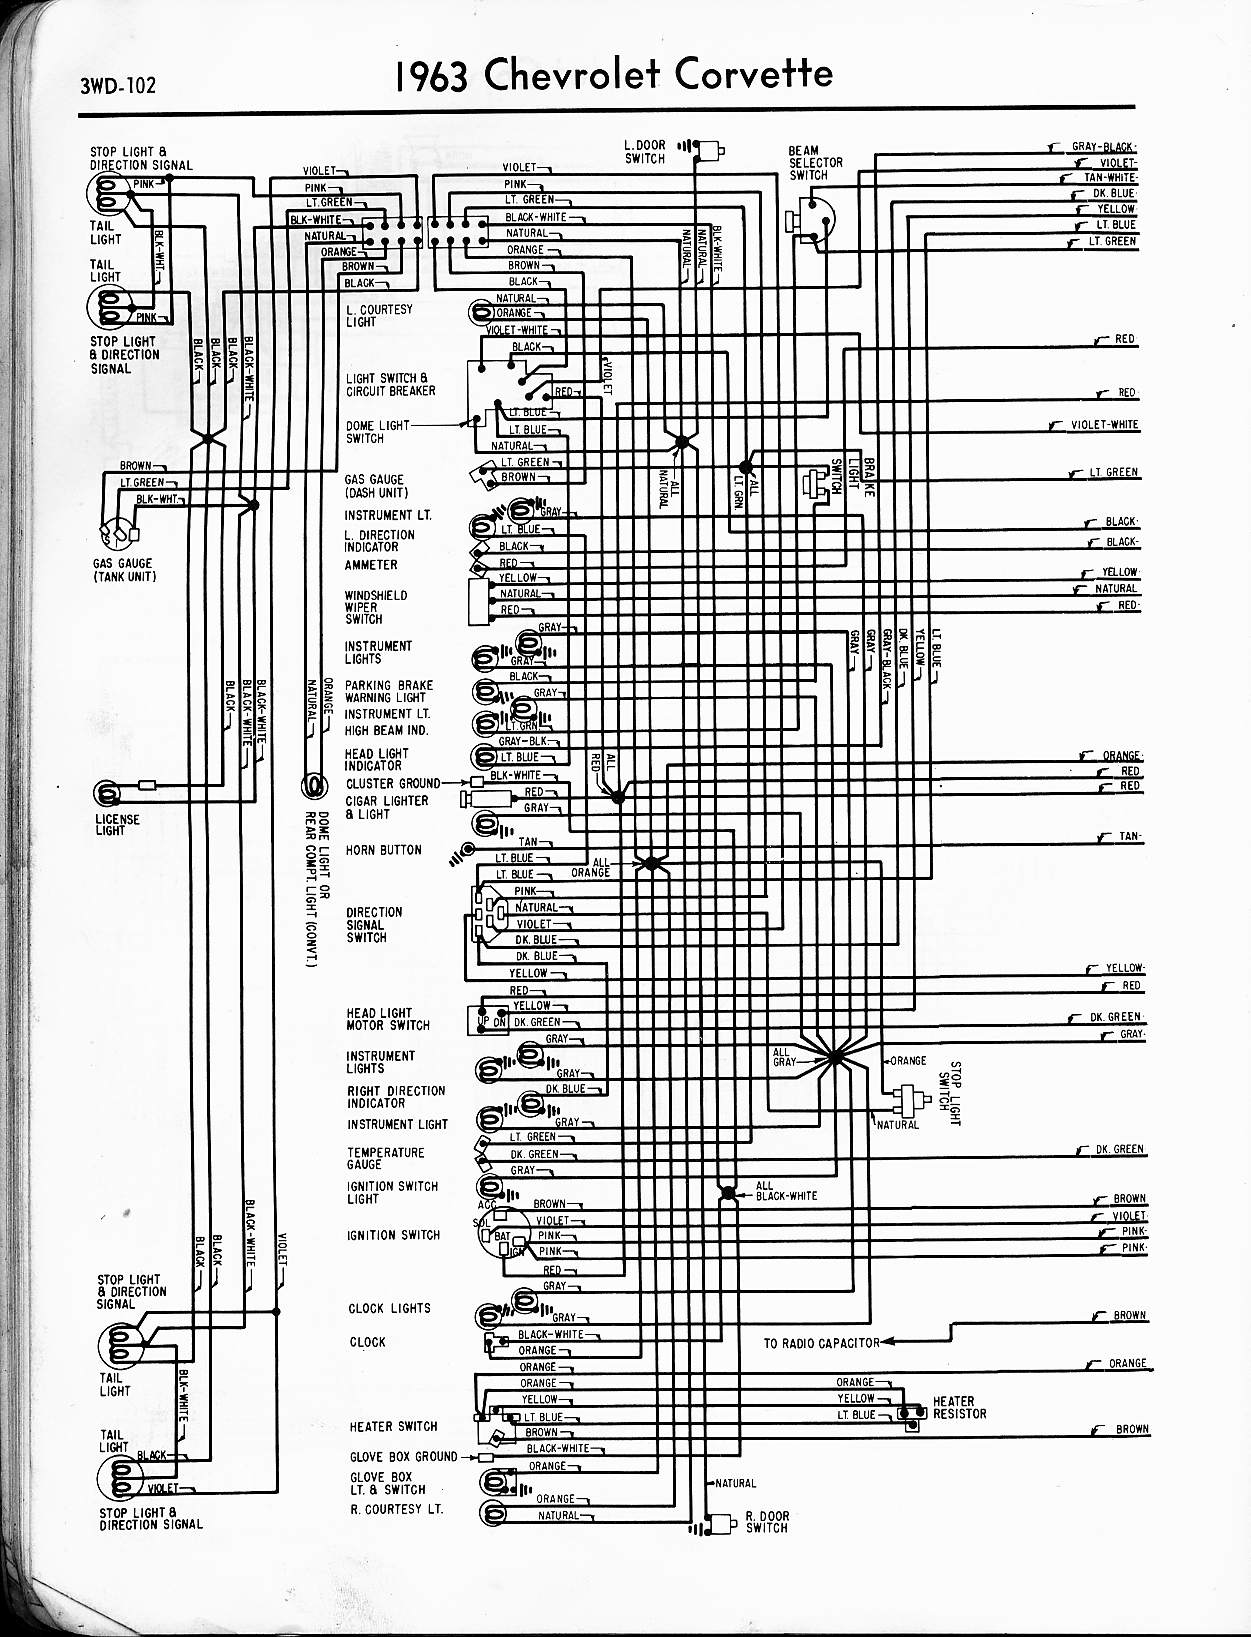 MWireChev63_3WD 102 57 65 chevy wiring diagrams 66 Corvette at webbmarketing.co